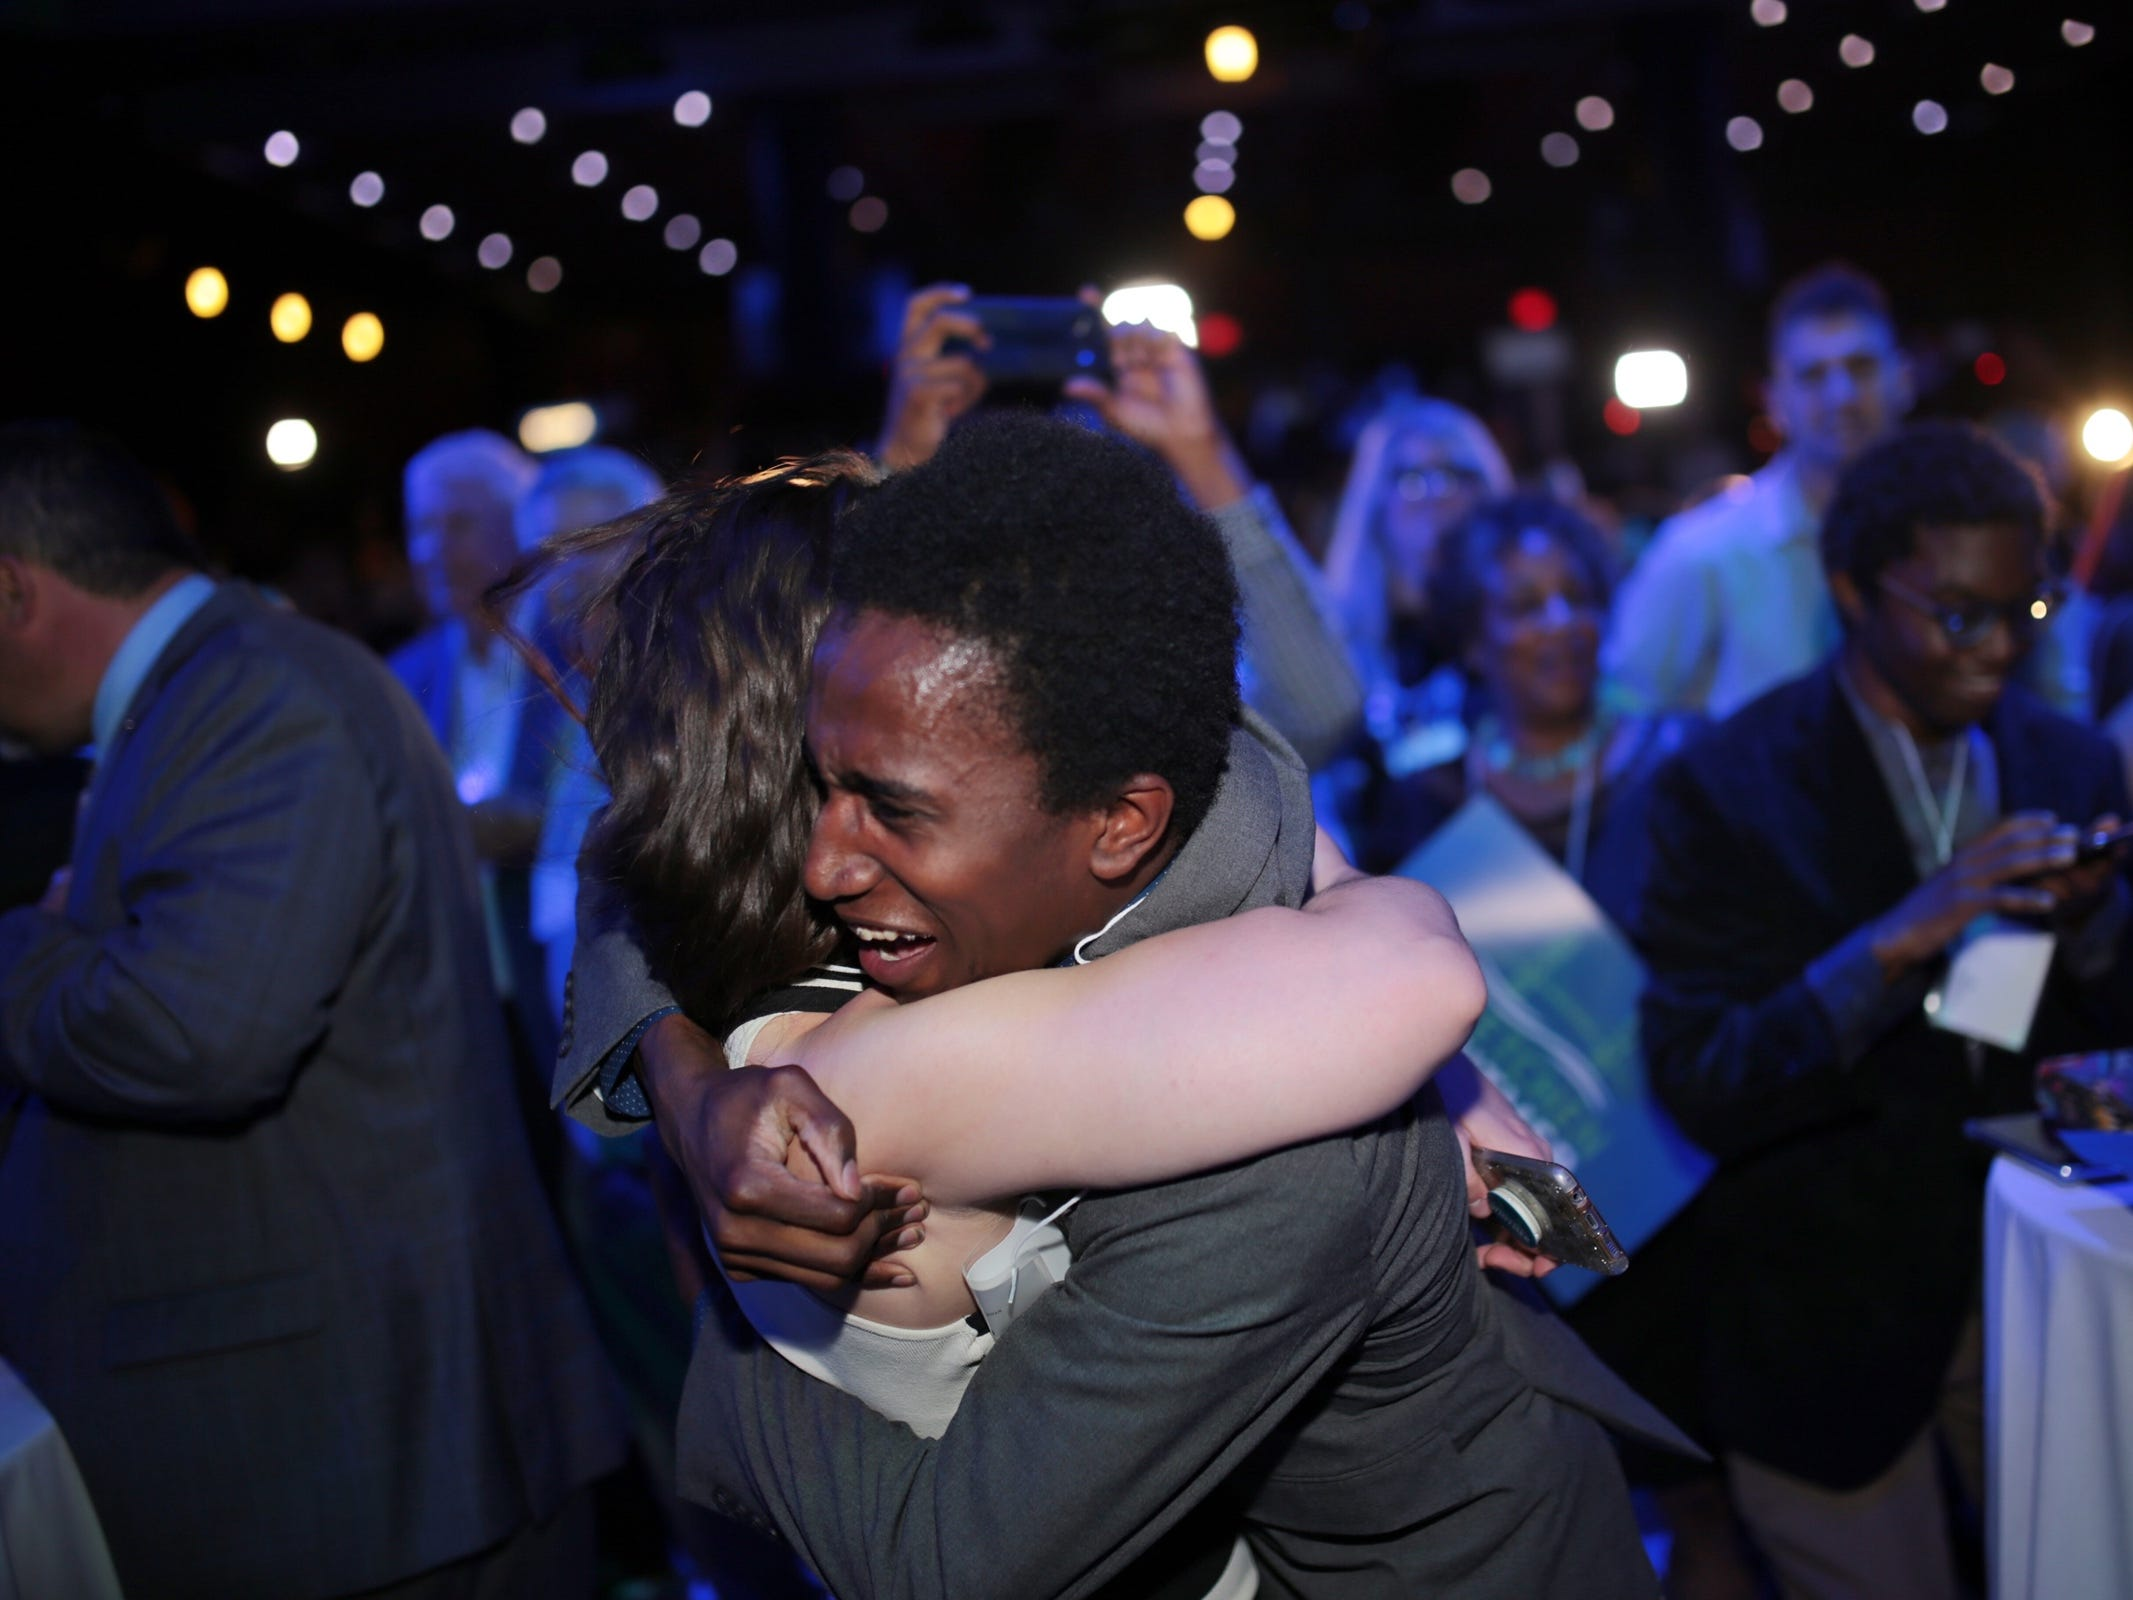 Amanda Dietlin of Rochester and TyJuan Thirdgill of Muskegon, hug after the announcement of democratic gubernatorial candidate Gretchen Whitmer winning during Michigan's primary race on Tuesday, August 7, 2018 at the election night party at the MotorCity Casino in Detroit.